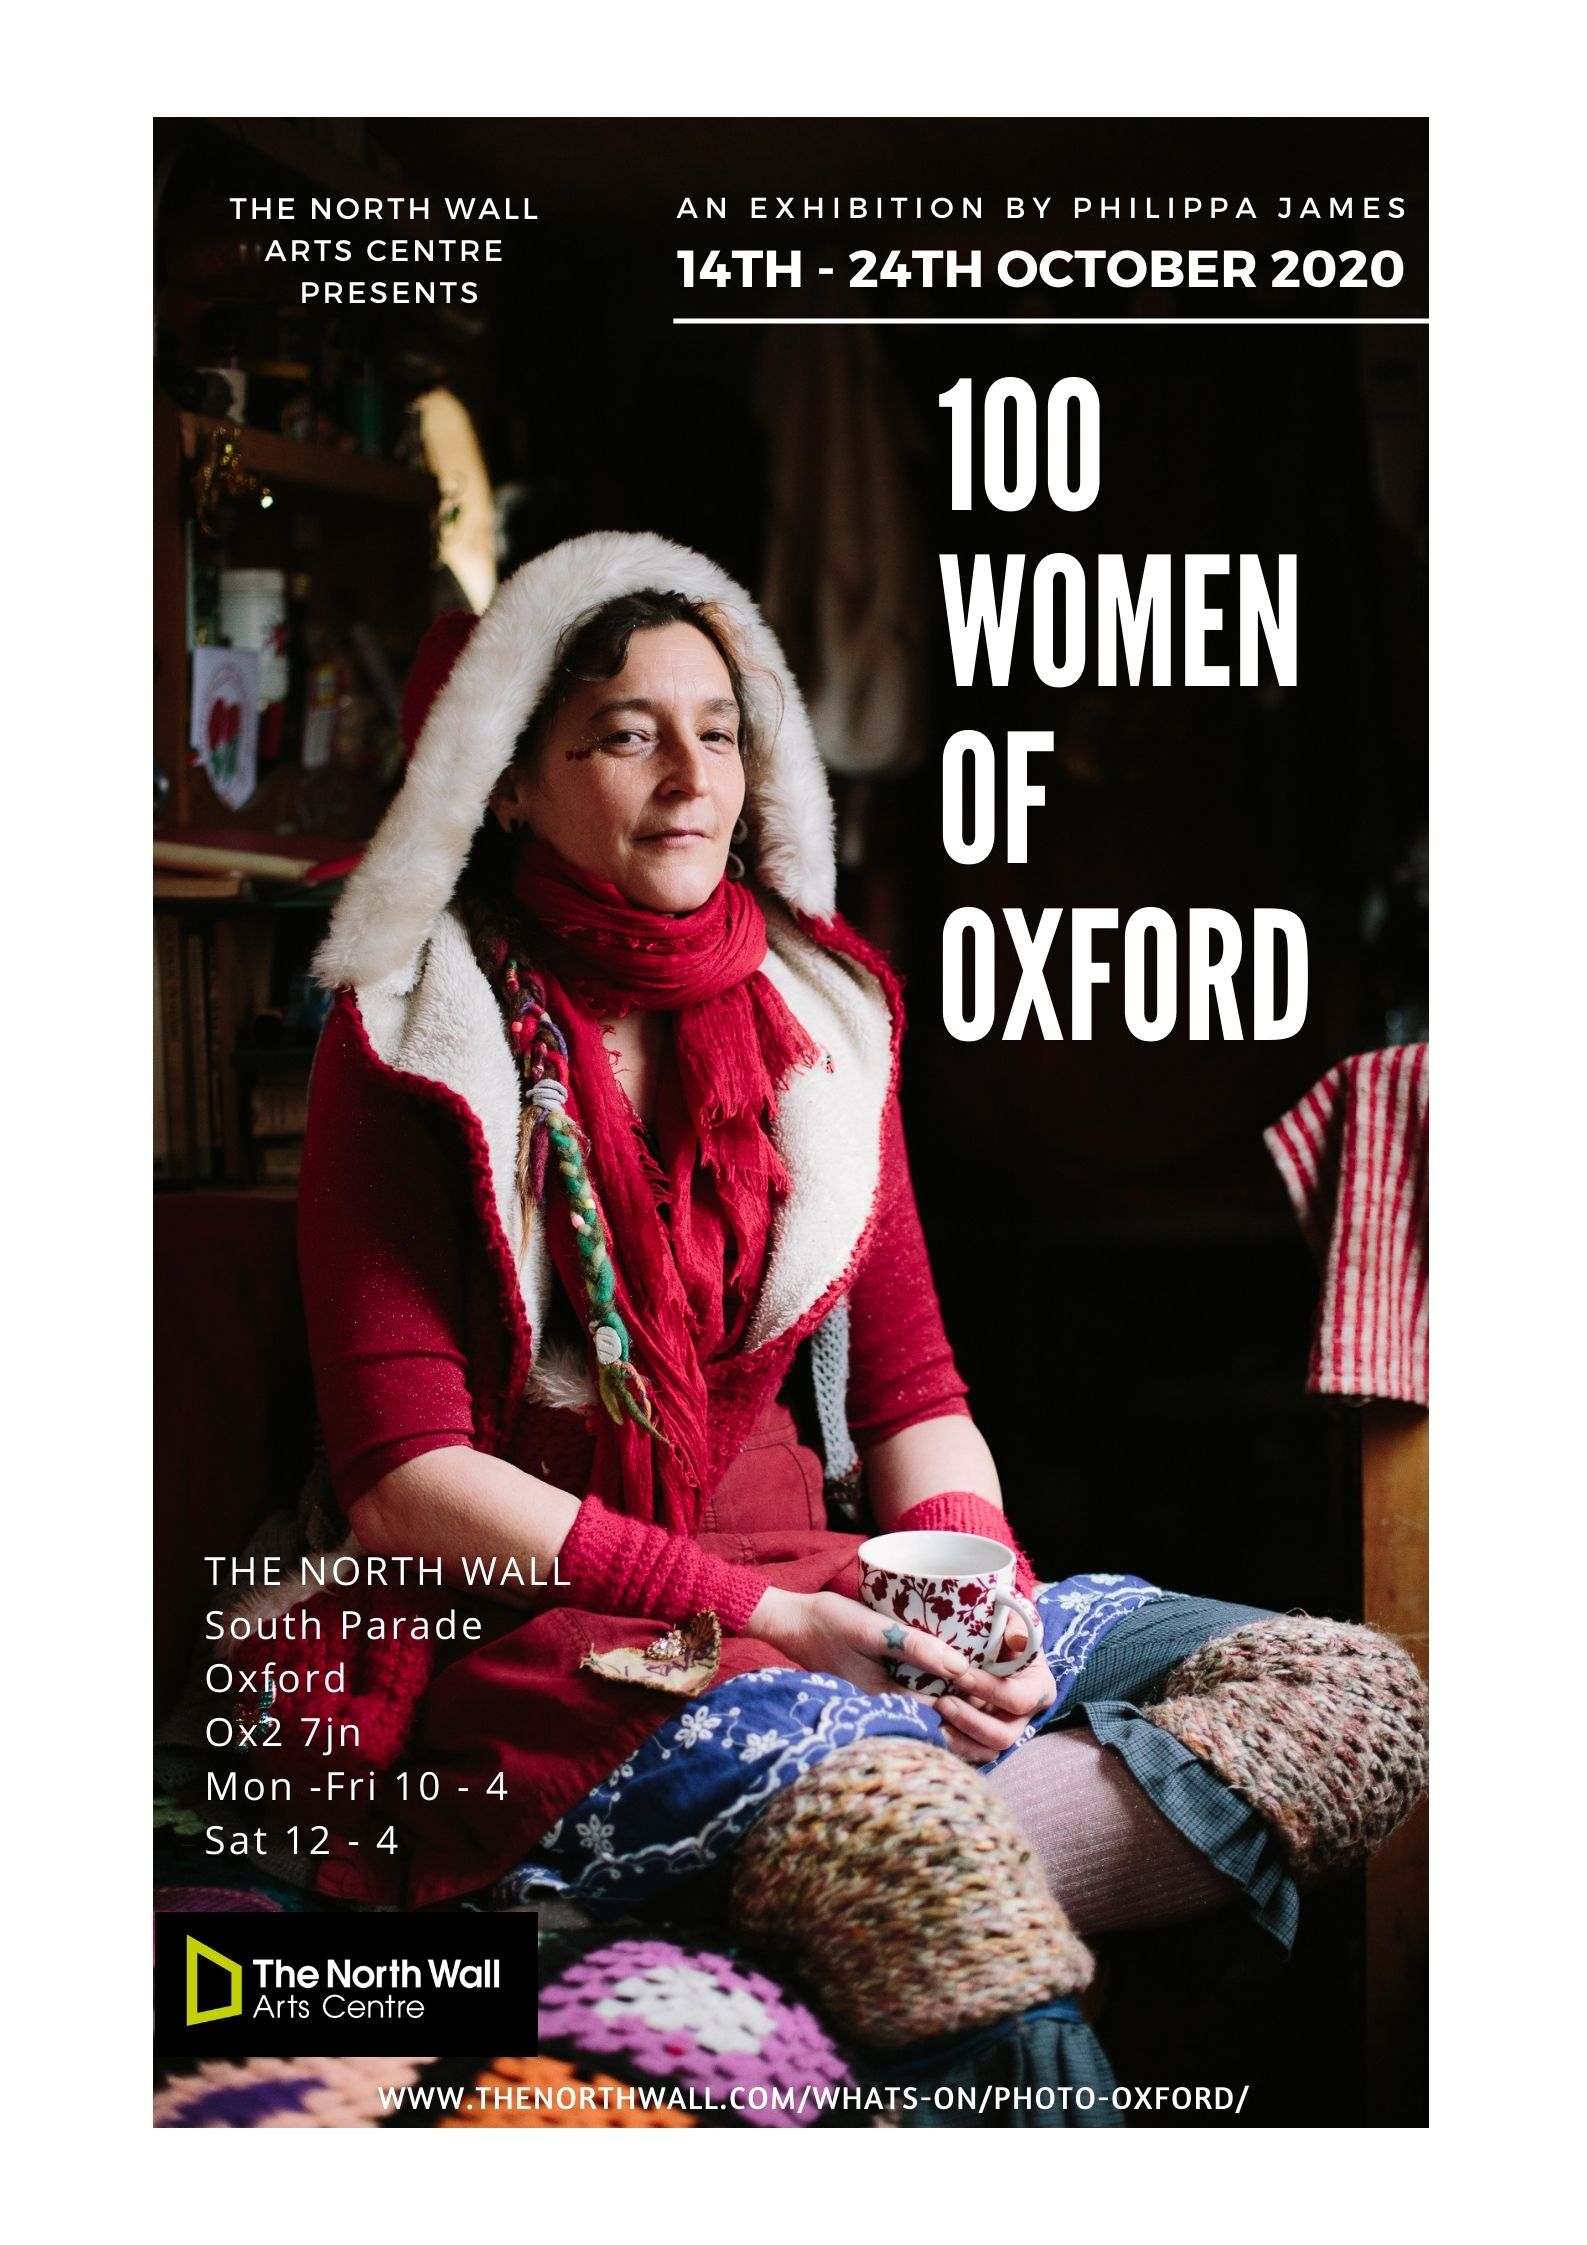 100 women of oxford exhibition poster